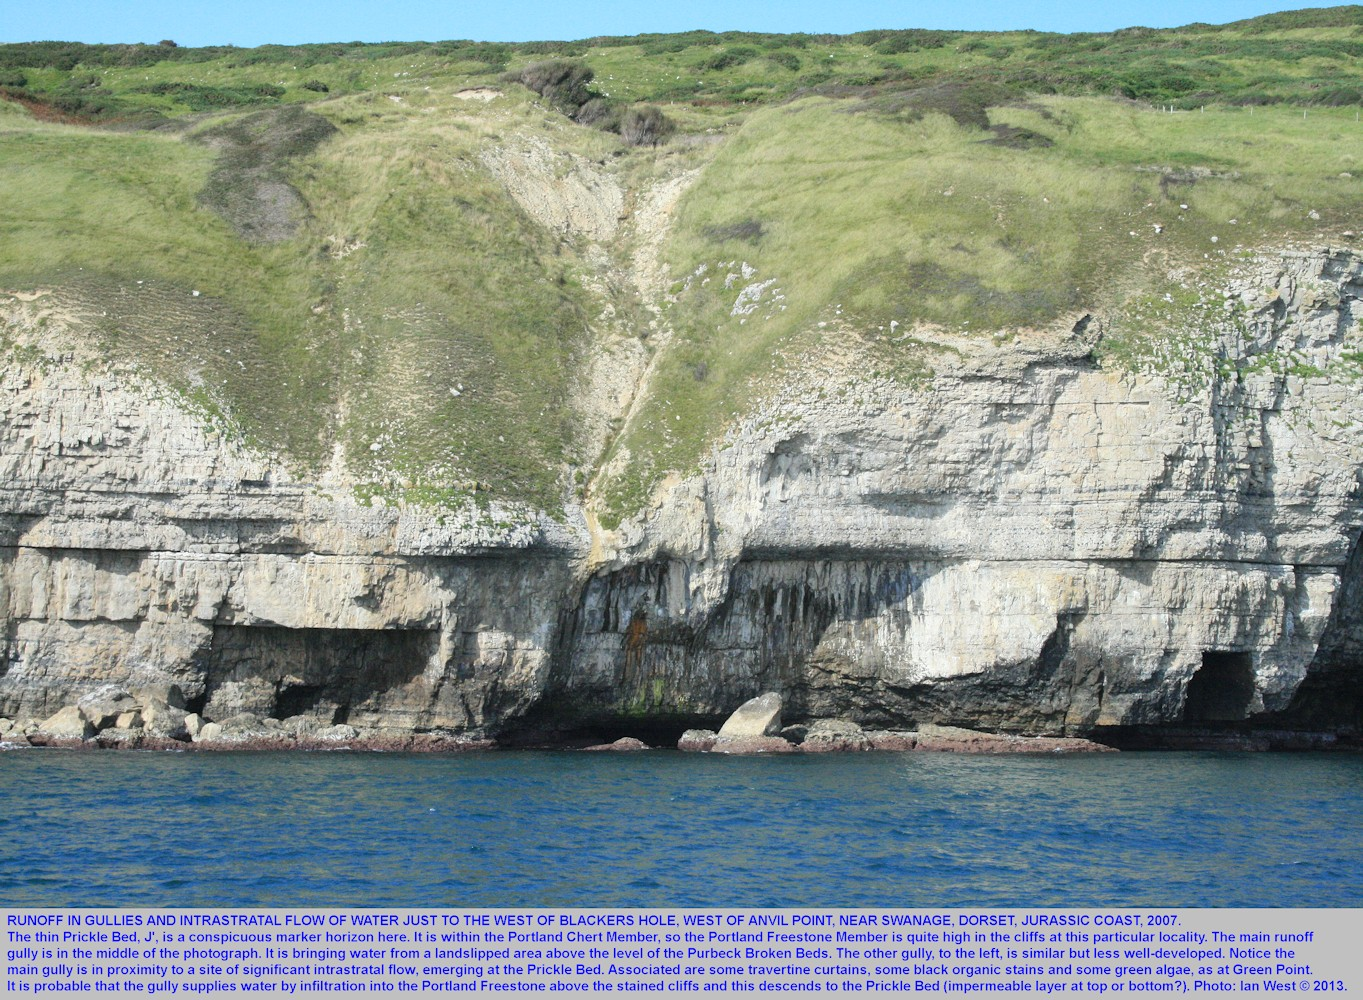 A run-off gully with infiltration into the Portland Stone, just west of Blackers Hole, near Swanage, Dorset, Jurassic Coast, 2007